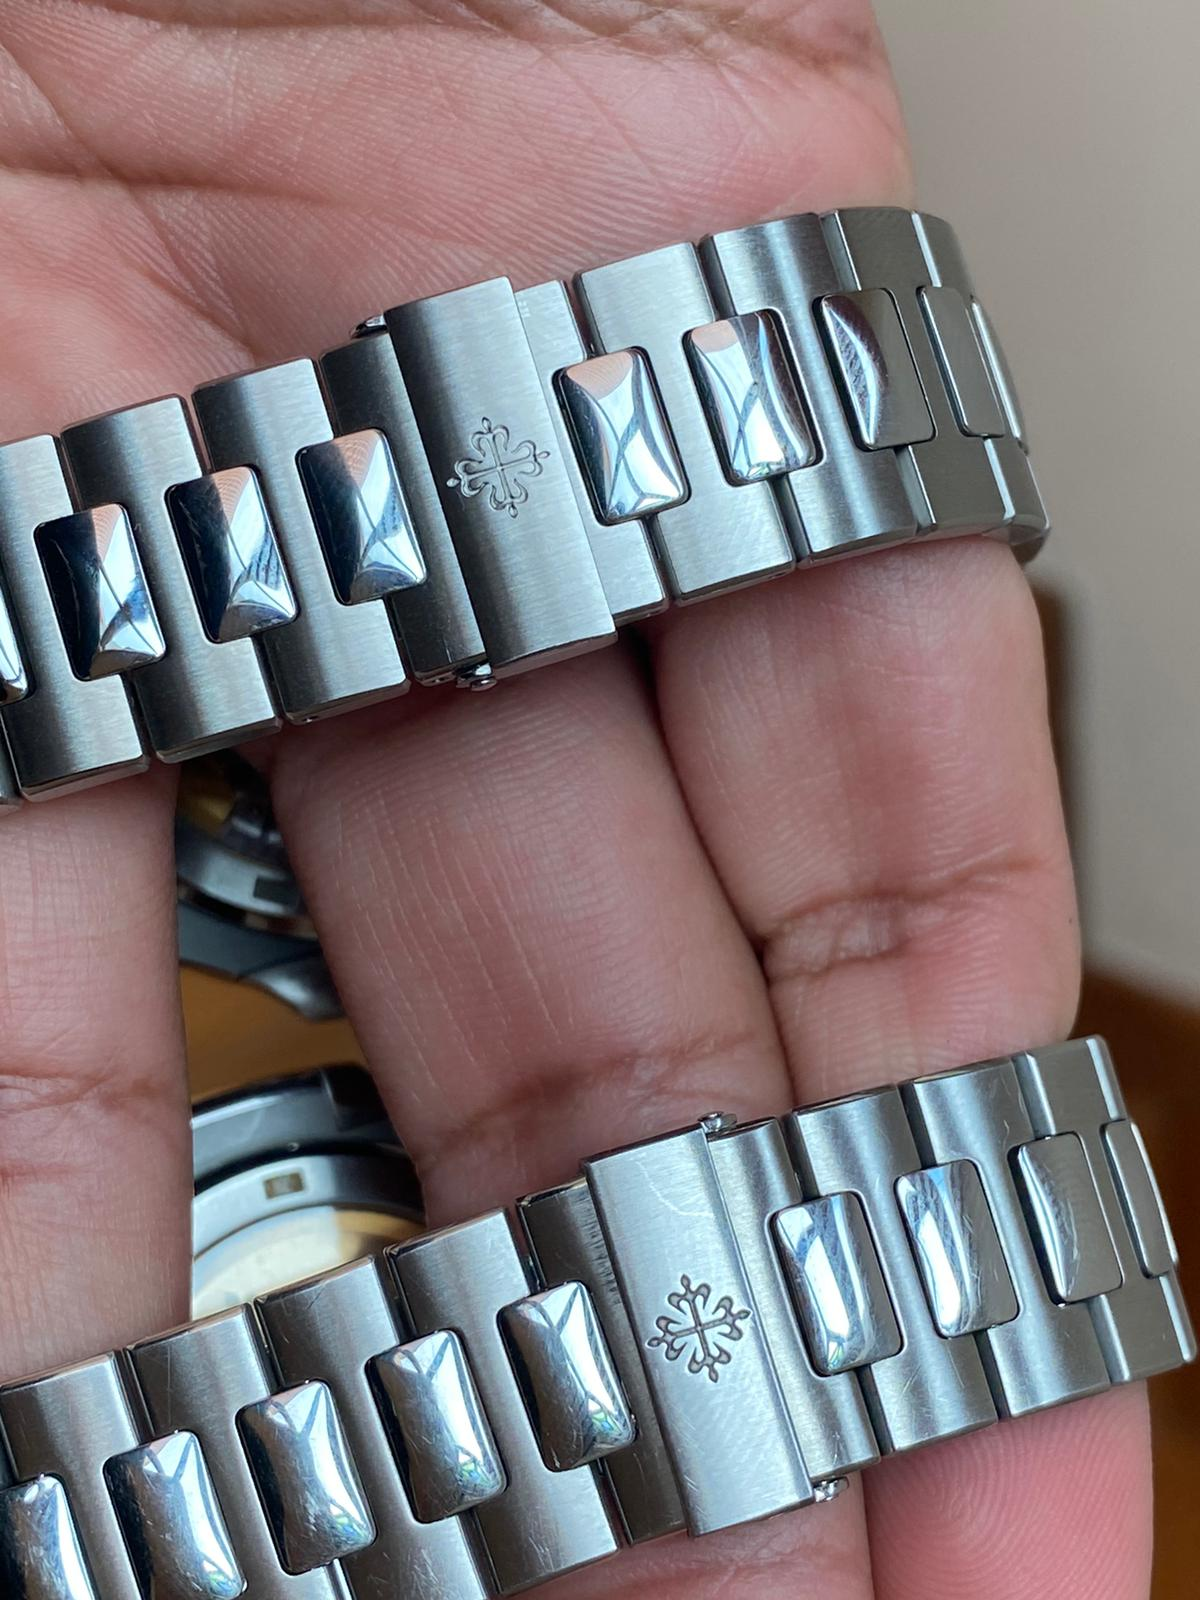 Inside a $140,000 watch scam (& how to avoid getting conned yourself)